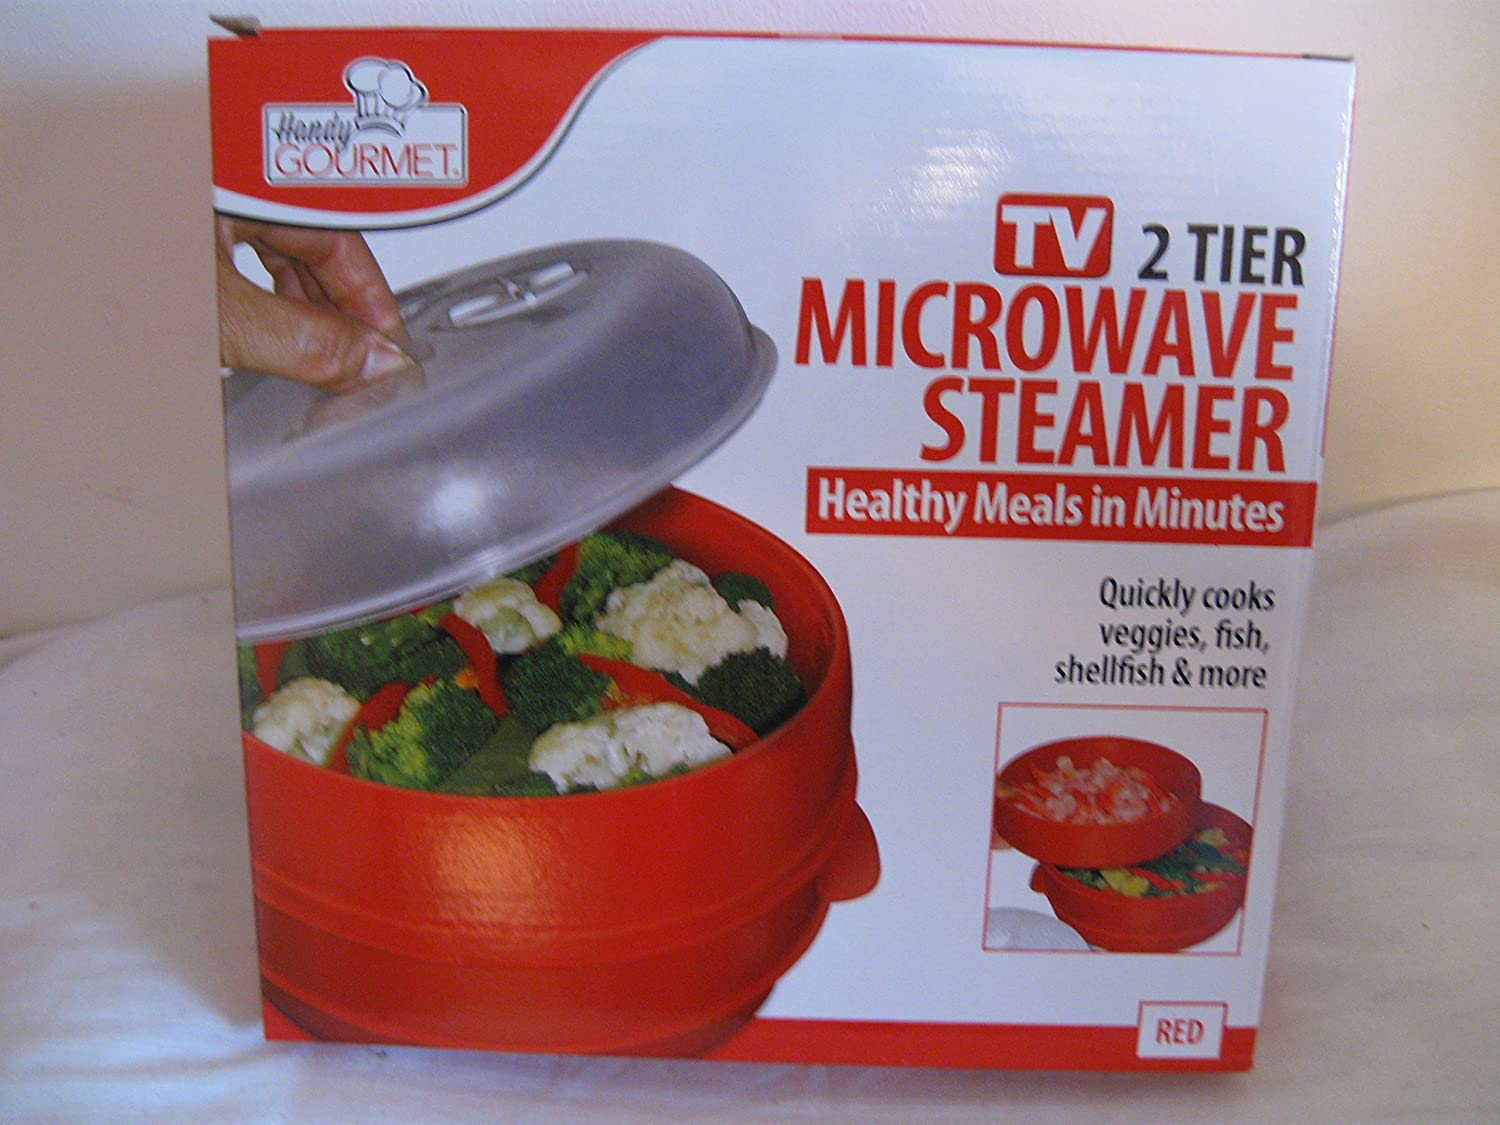 Handy Gourmet FAM-6216 2 Tier Microwave Steamer Red